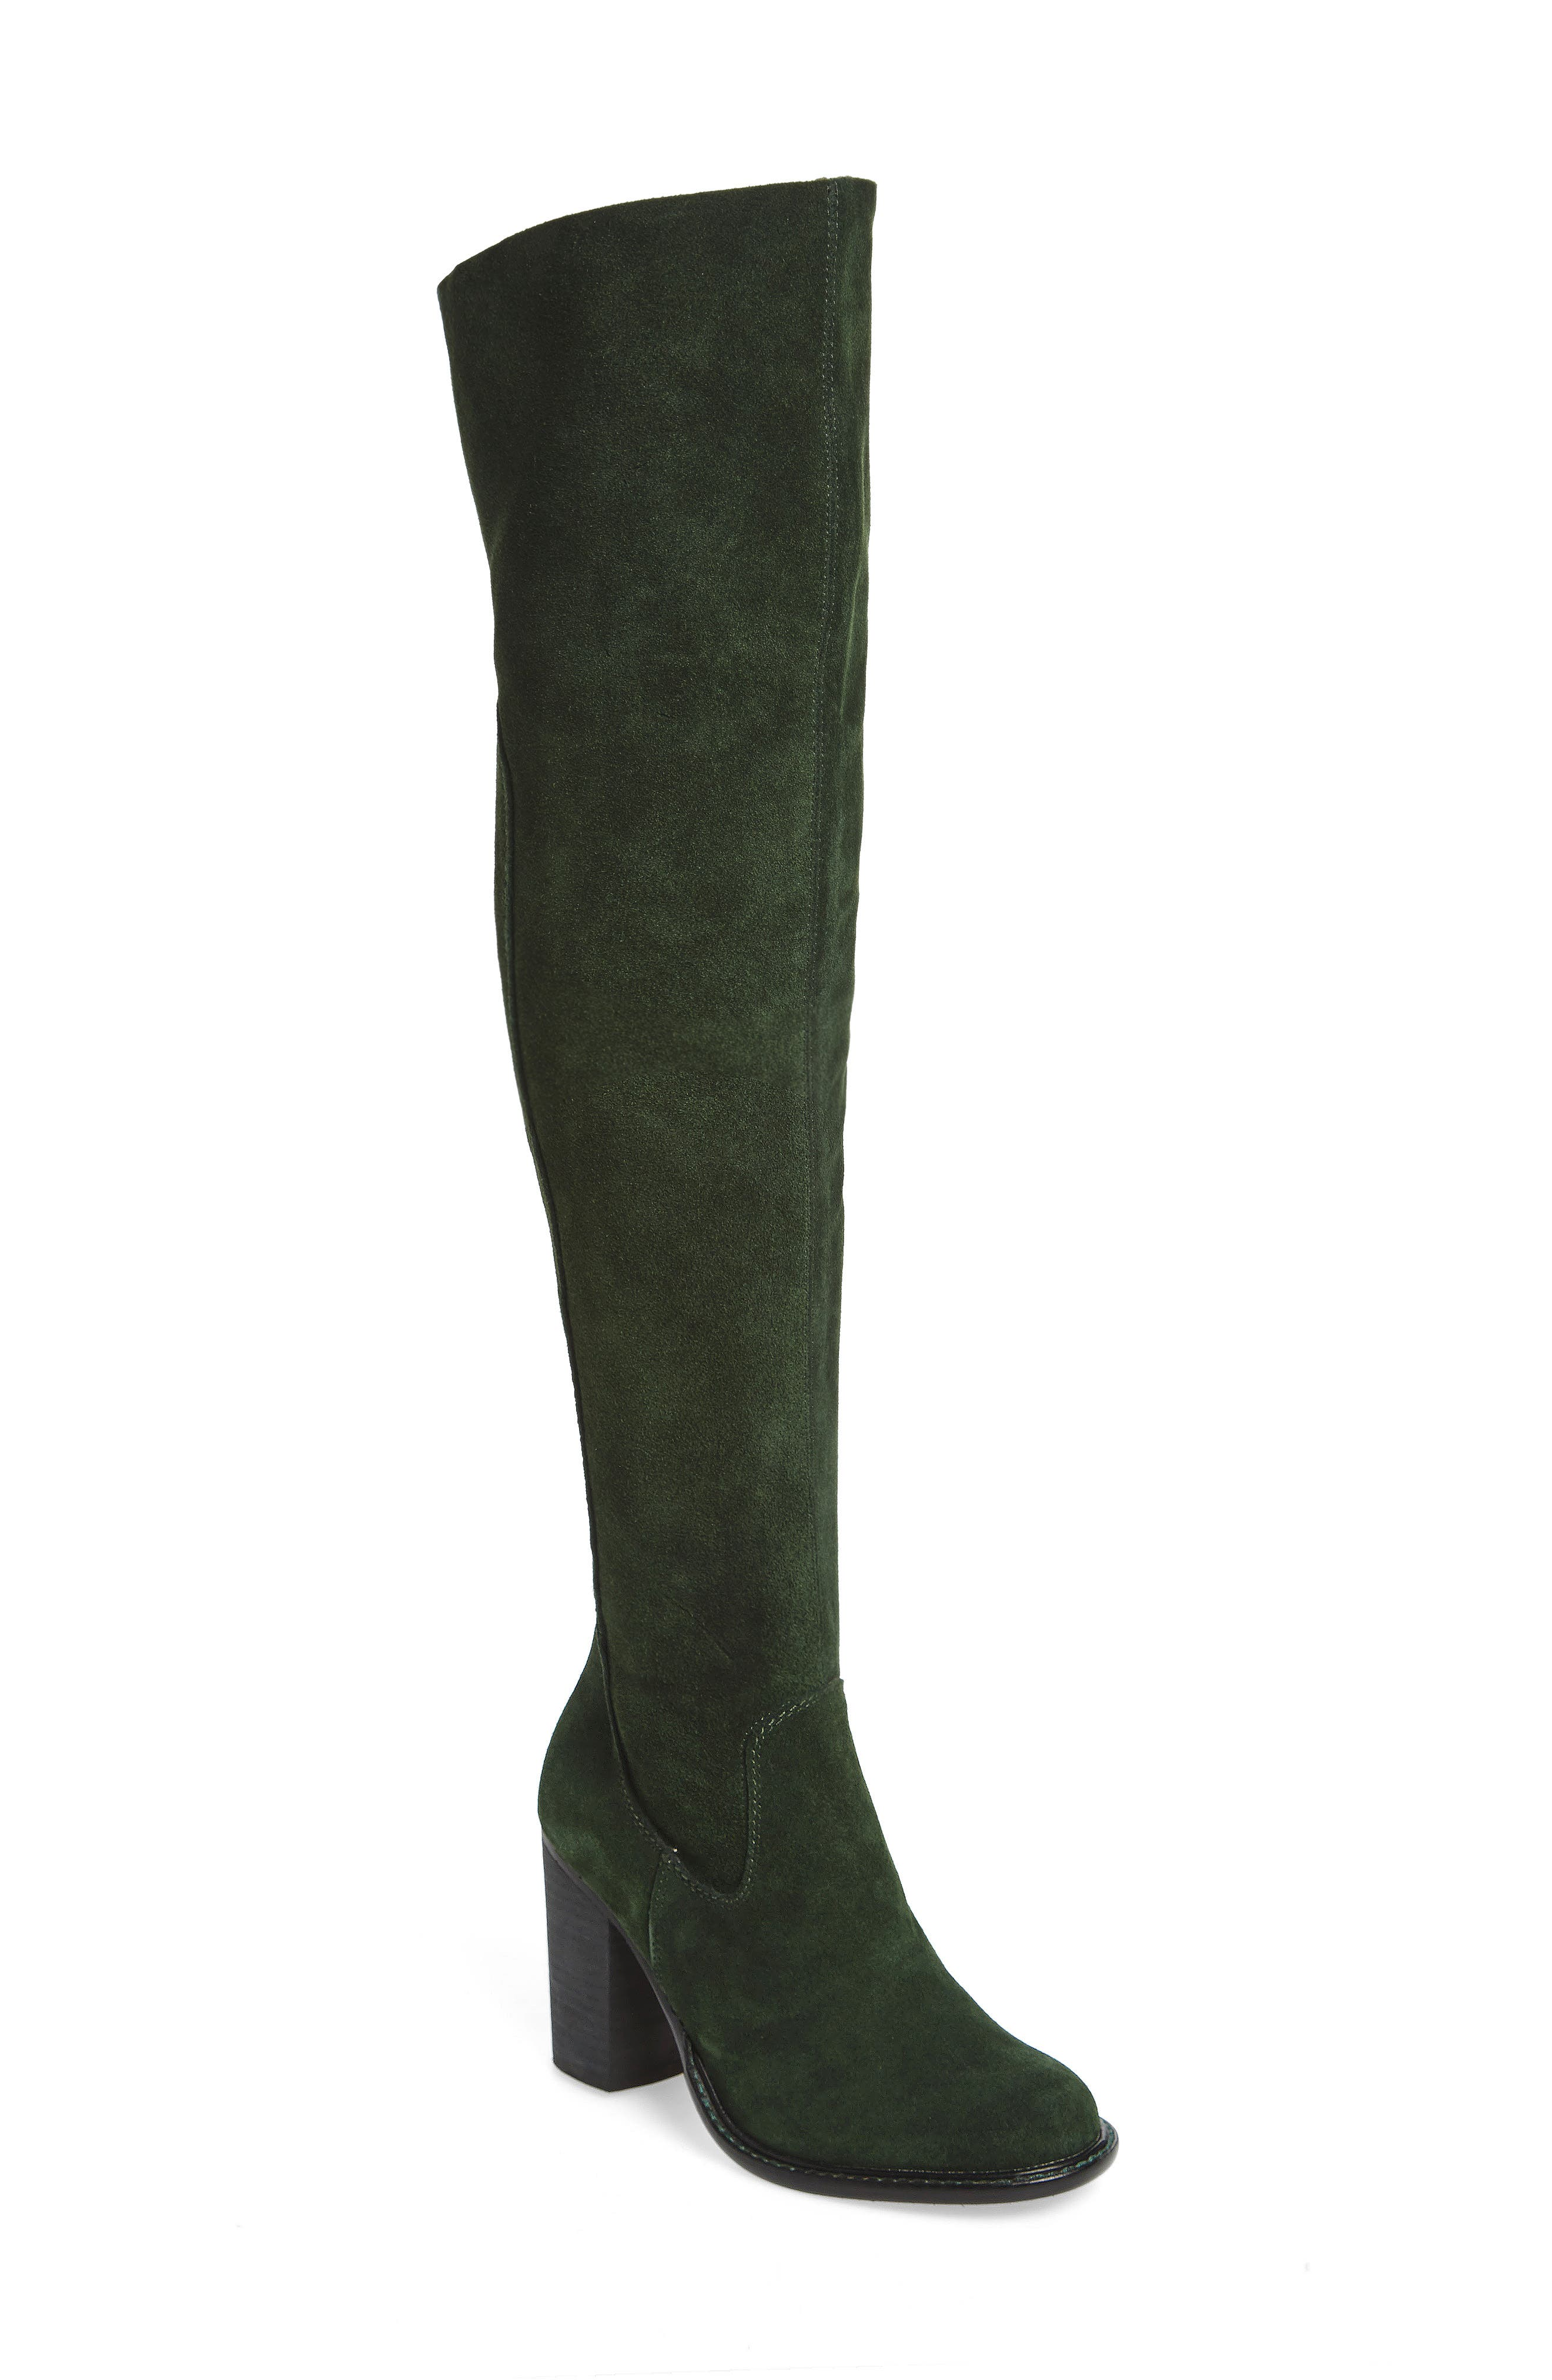 Logan Over the Knee Boot,                             Main thumbnail 1, color,                             Forest